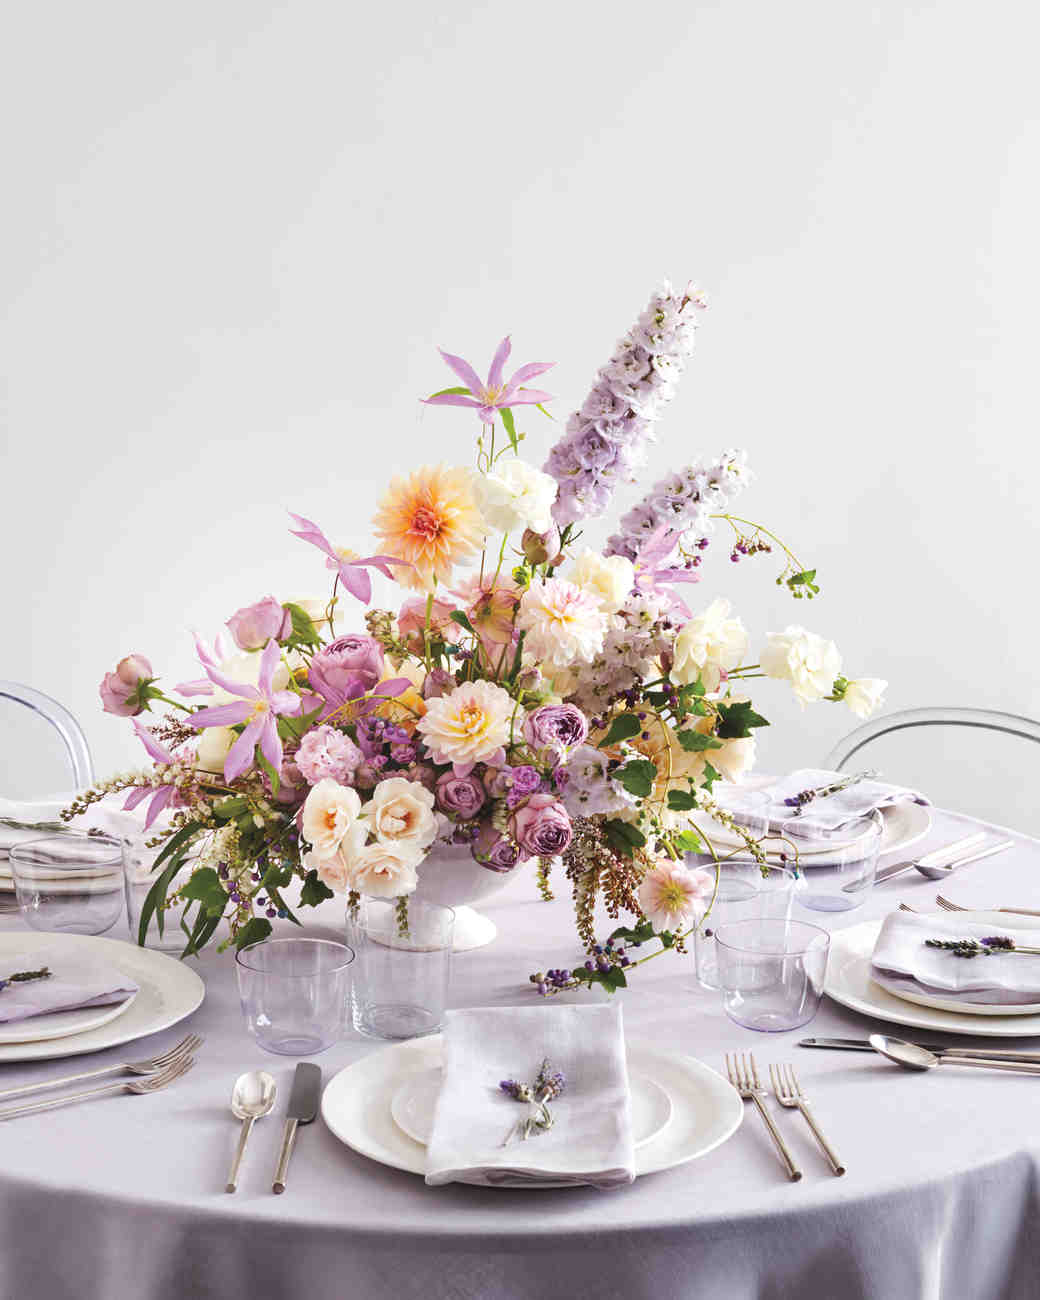 Flower Arrangement Ideas For Weddings: 23 DIY Wedding Centerpieces We Love